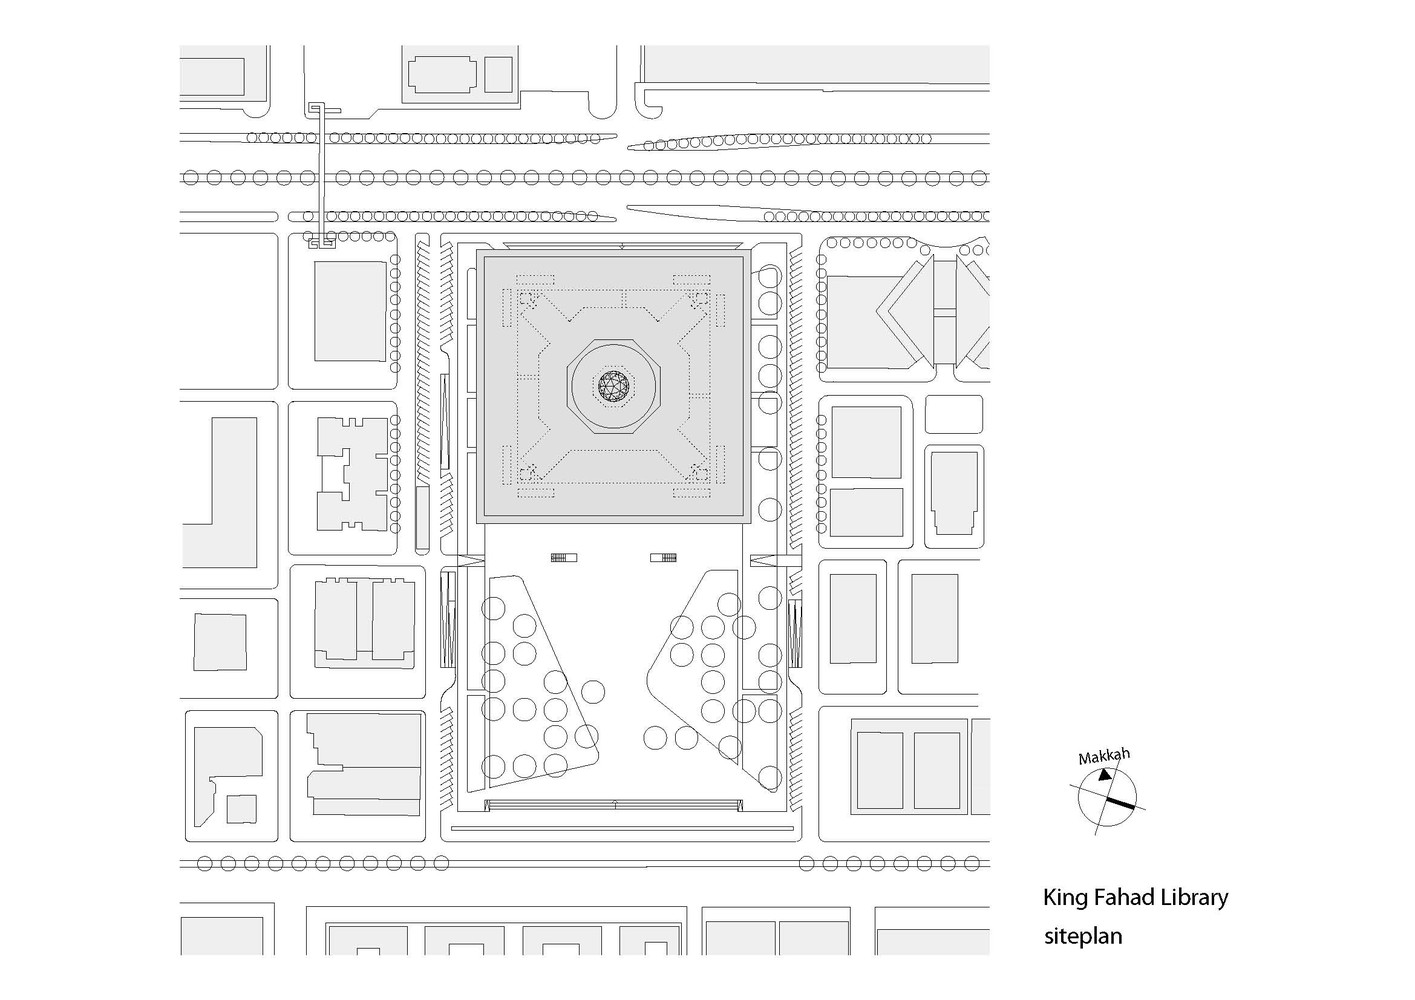 Gallery Of King Fahad National Library Gerber Architekten 15 Gm 2 Engine Parts Diagram Libraryfloor Plan